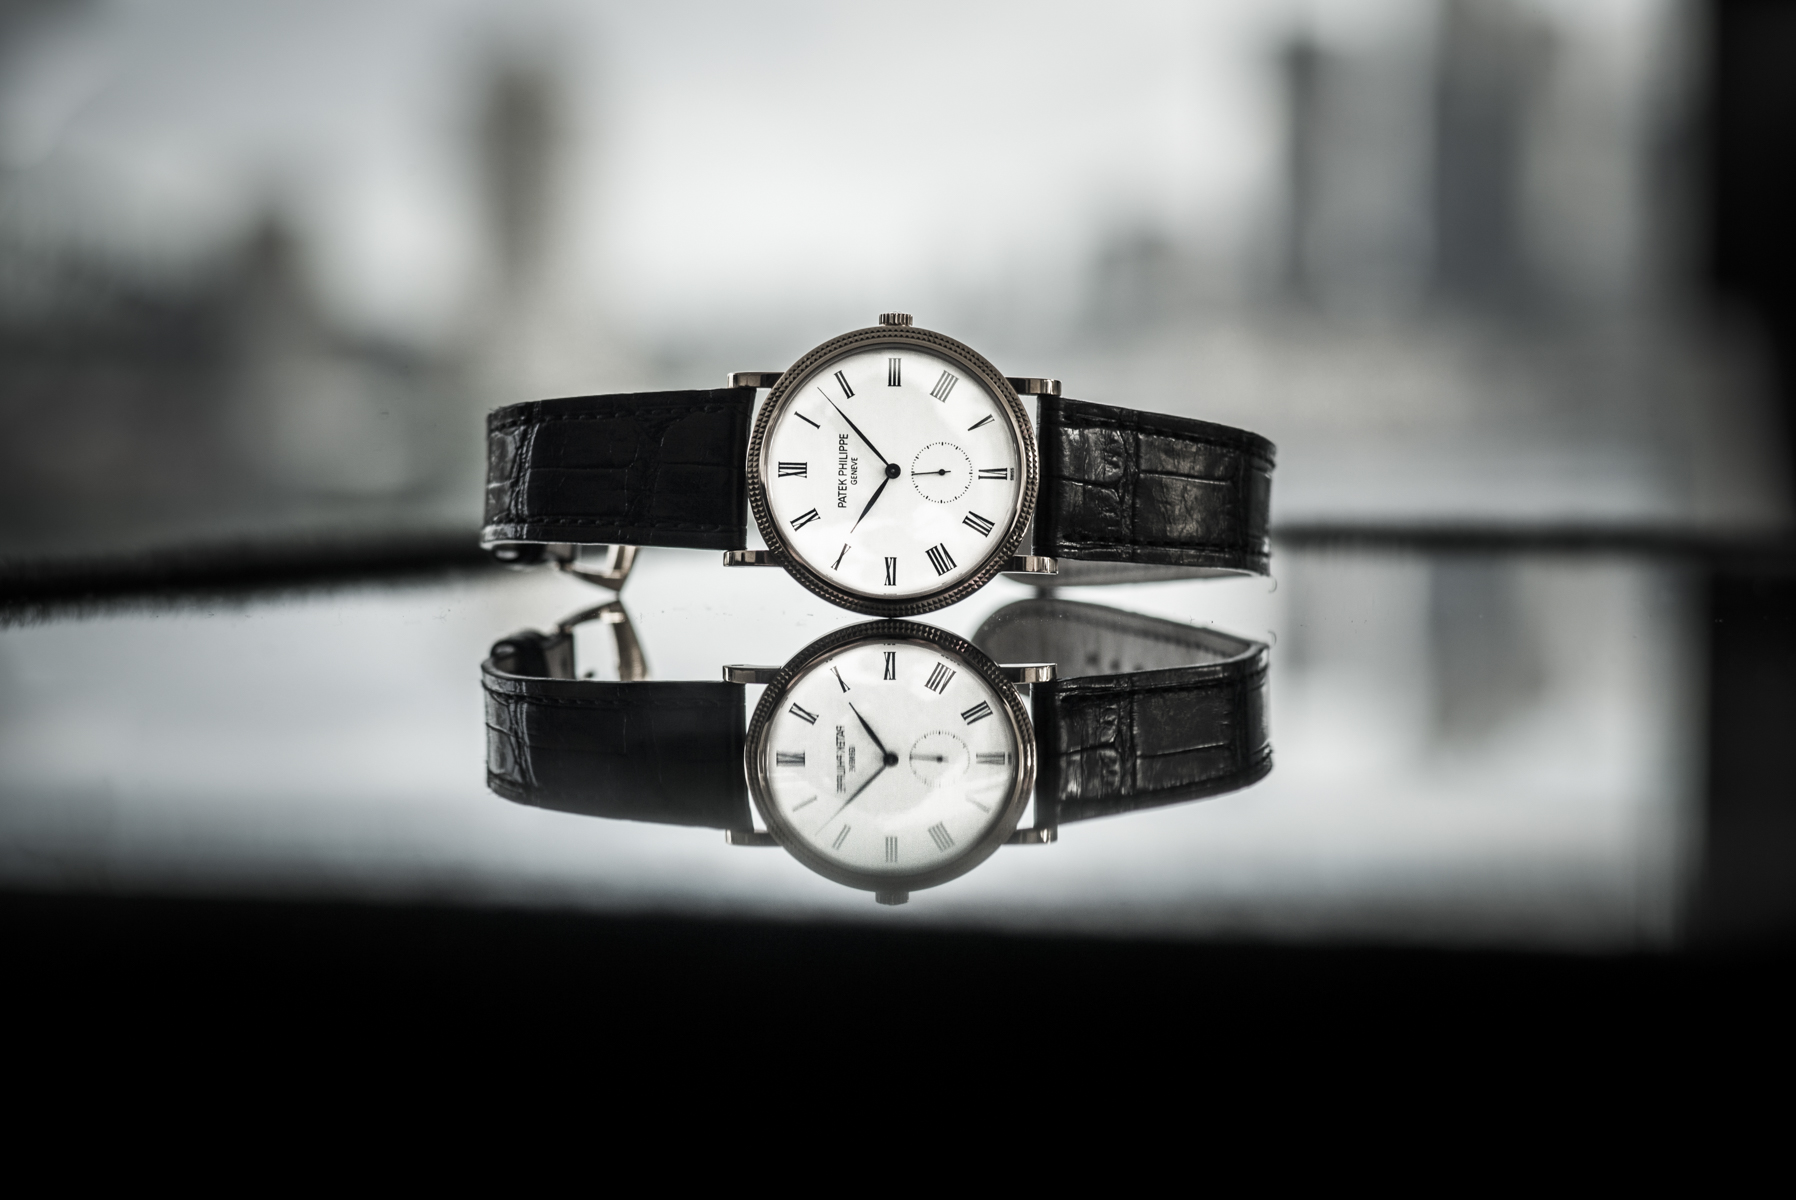 watches watch luxury high kalory jewellery in and video photo swiss end london photography